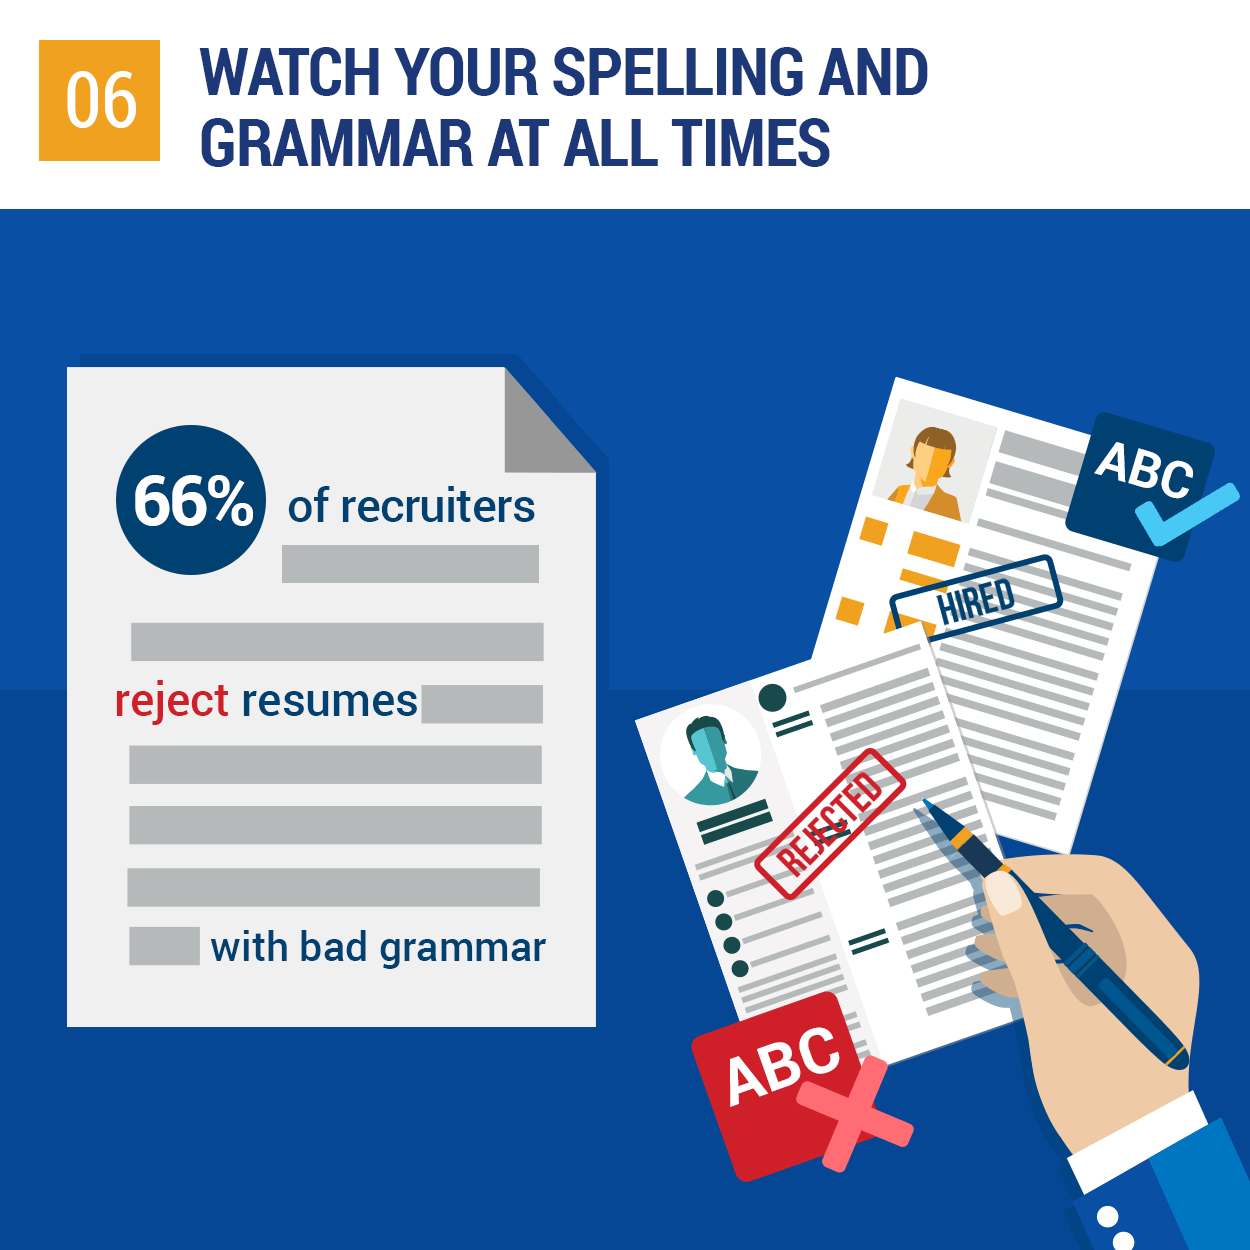 Watch your spelling and grammar at all times